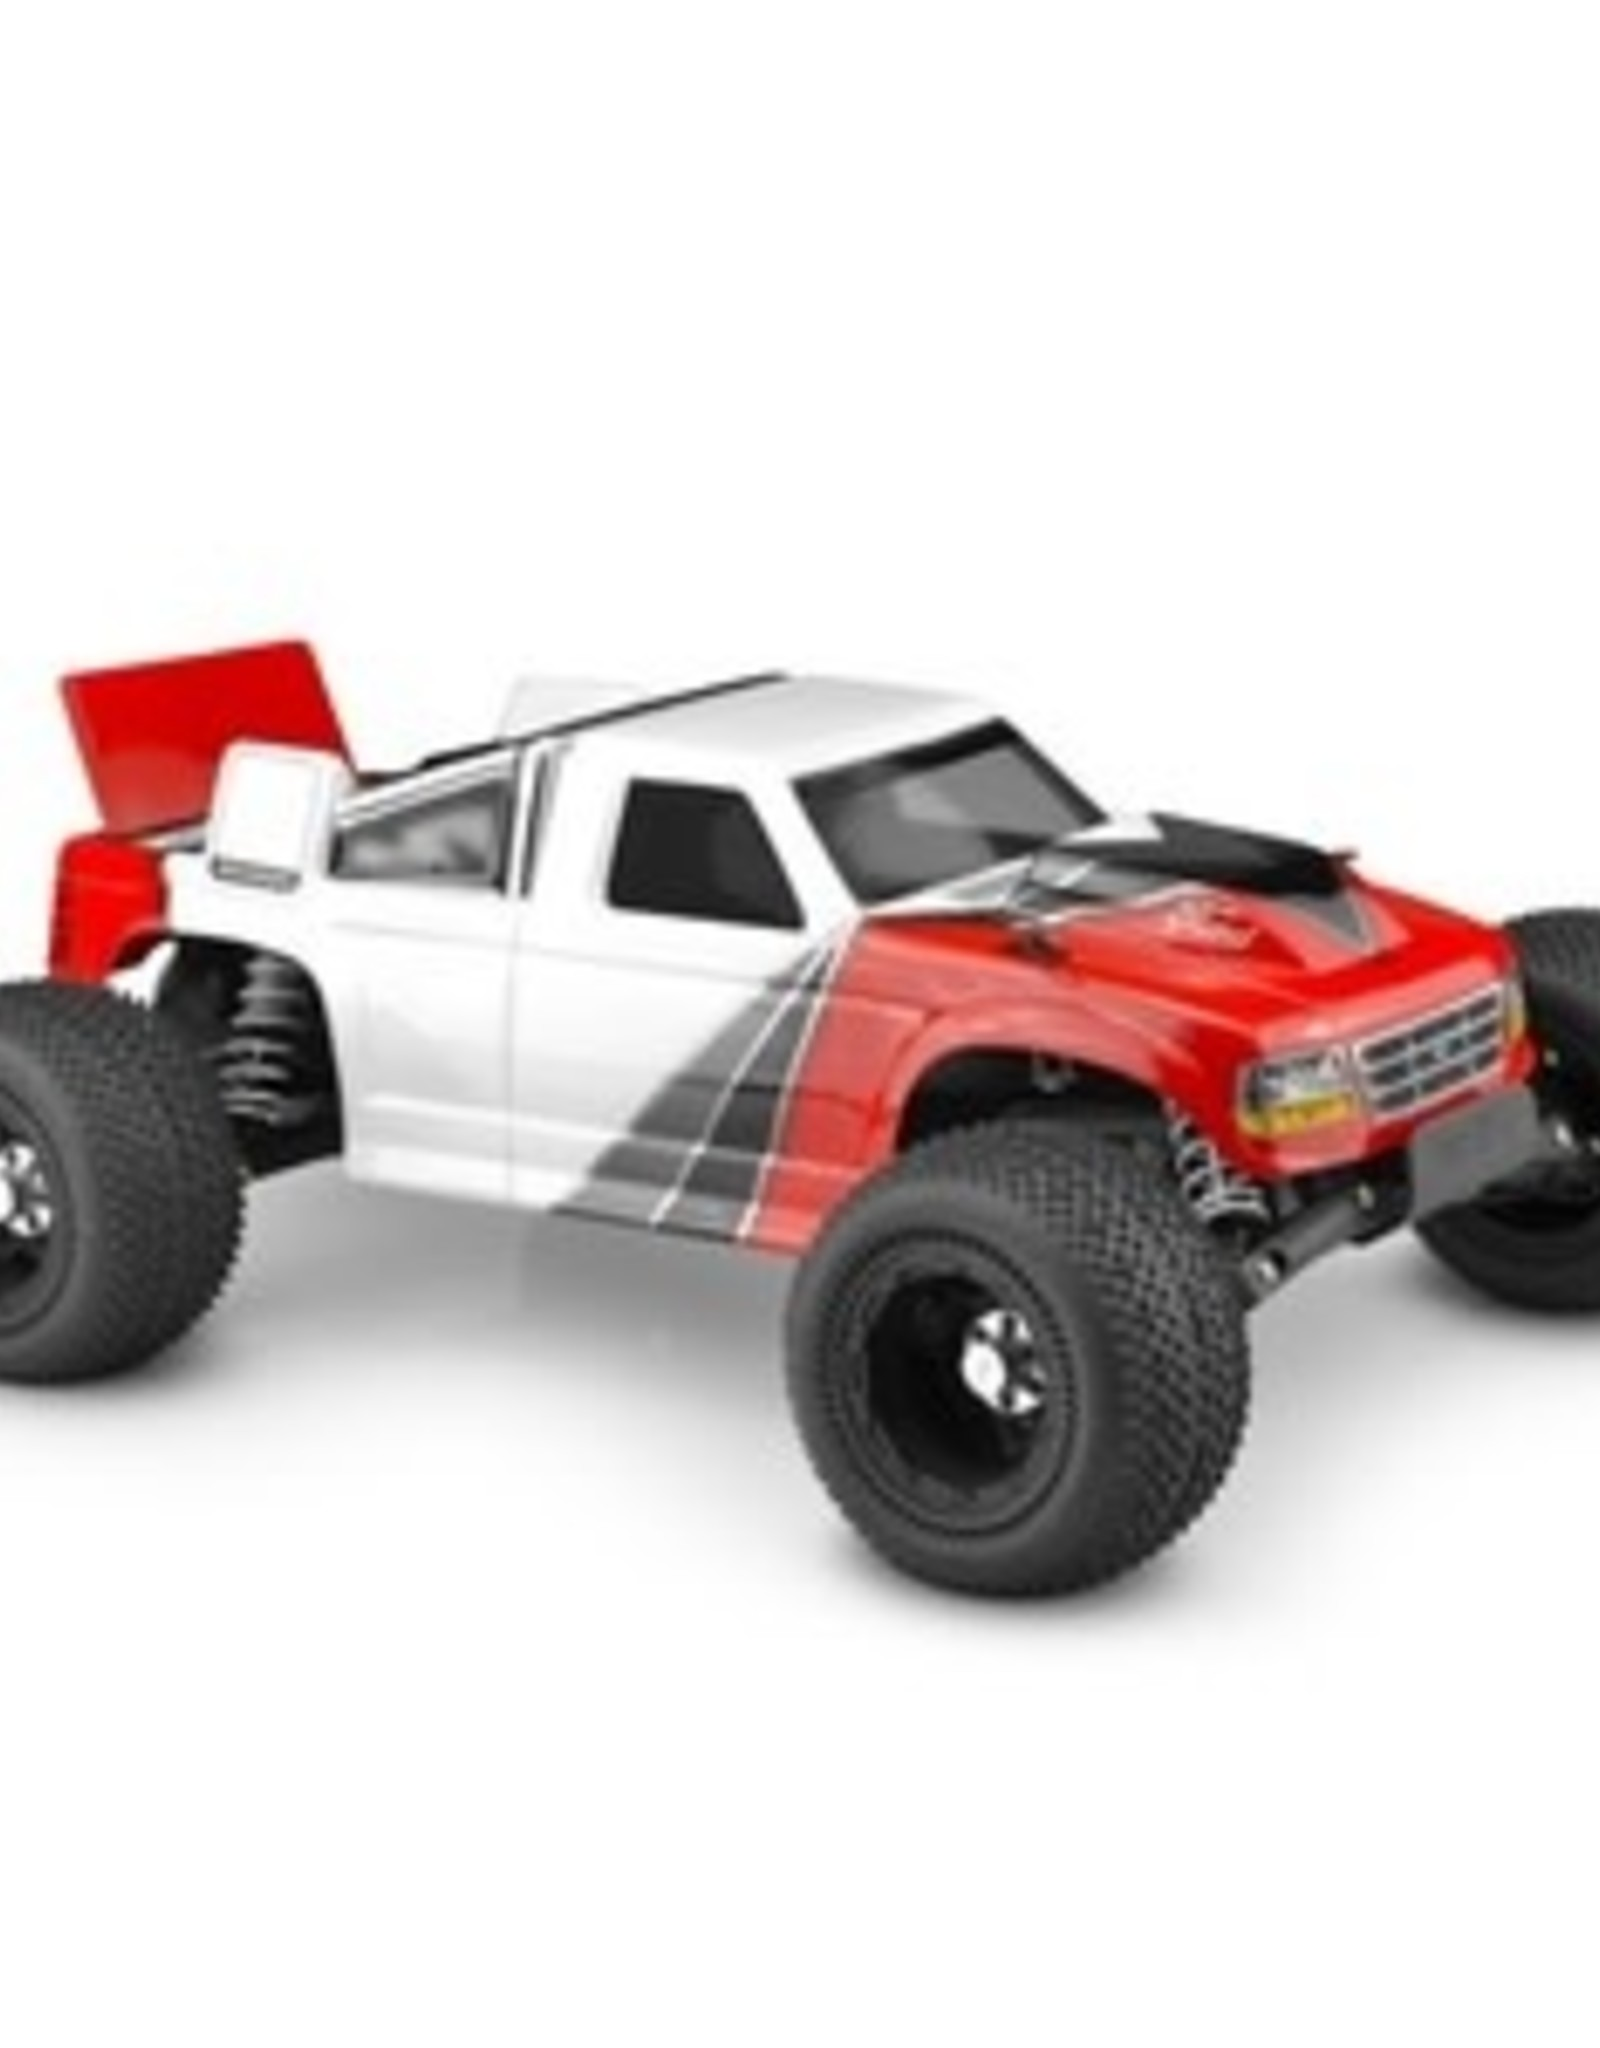 JConcepts 1993 Ford F-150 Rustler VXL Body with Rear Spoiler